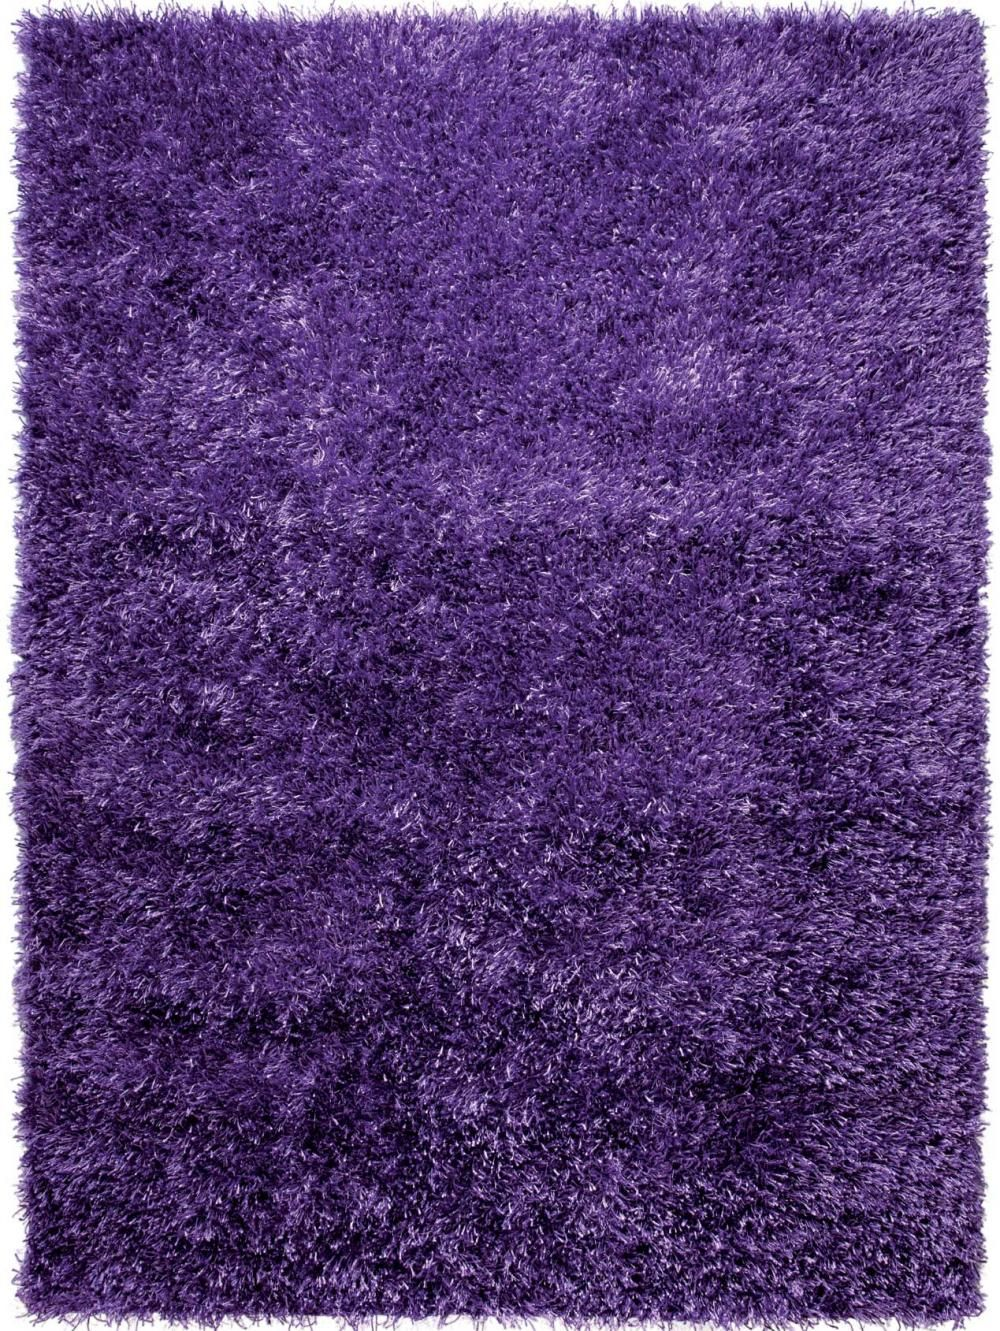 Esprit Teppich Sale Esprit Teppich Cool Glamour Lila Pictures | Purple Rug, Rugs, Buy Area Rugs